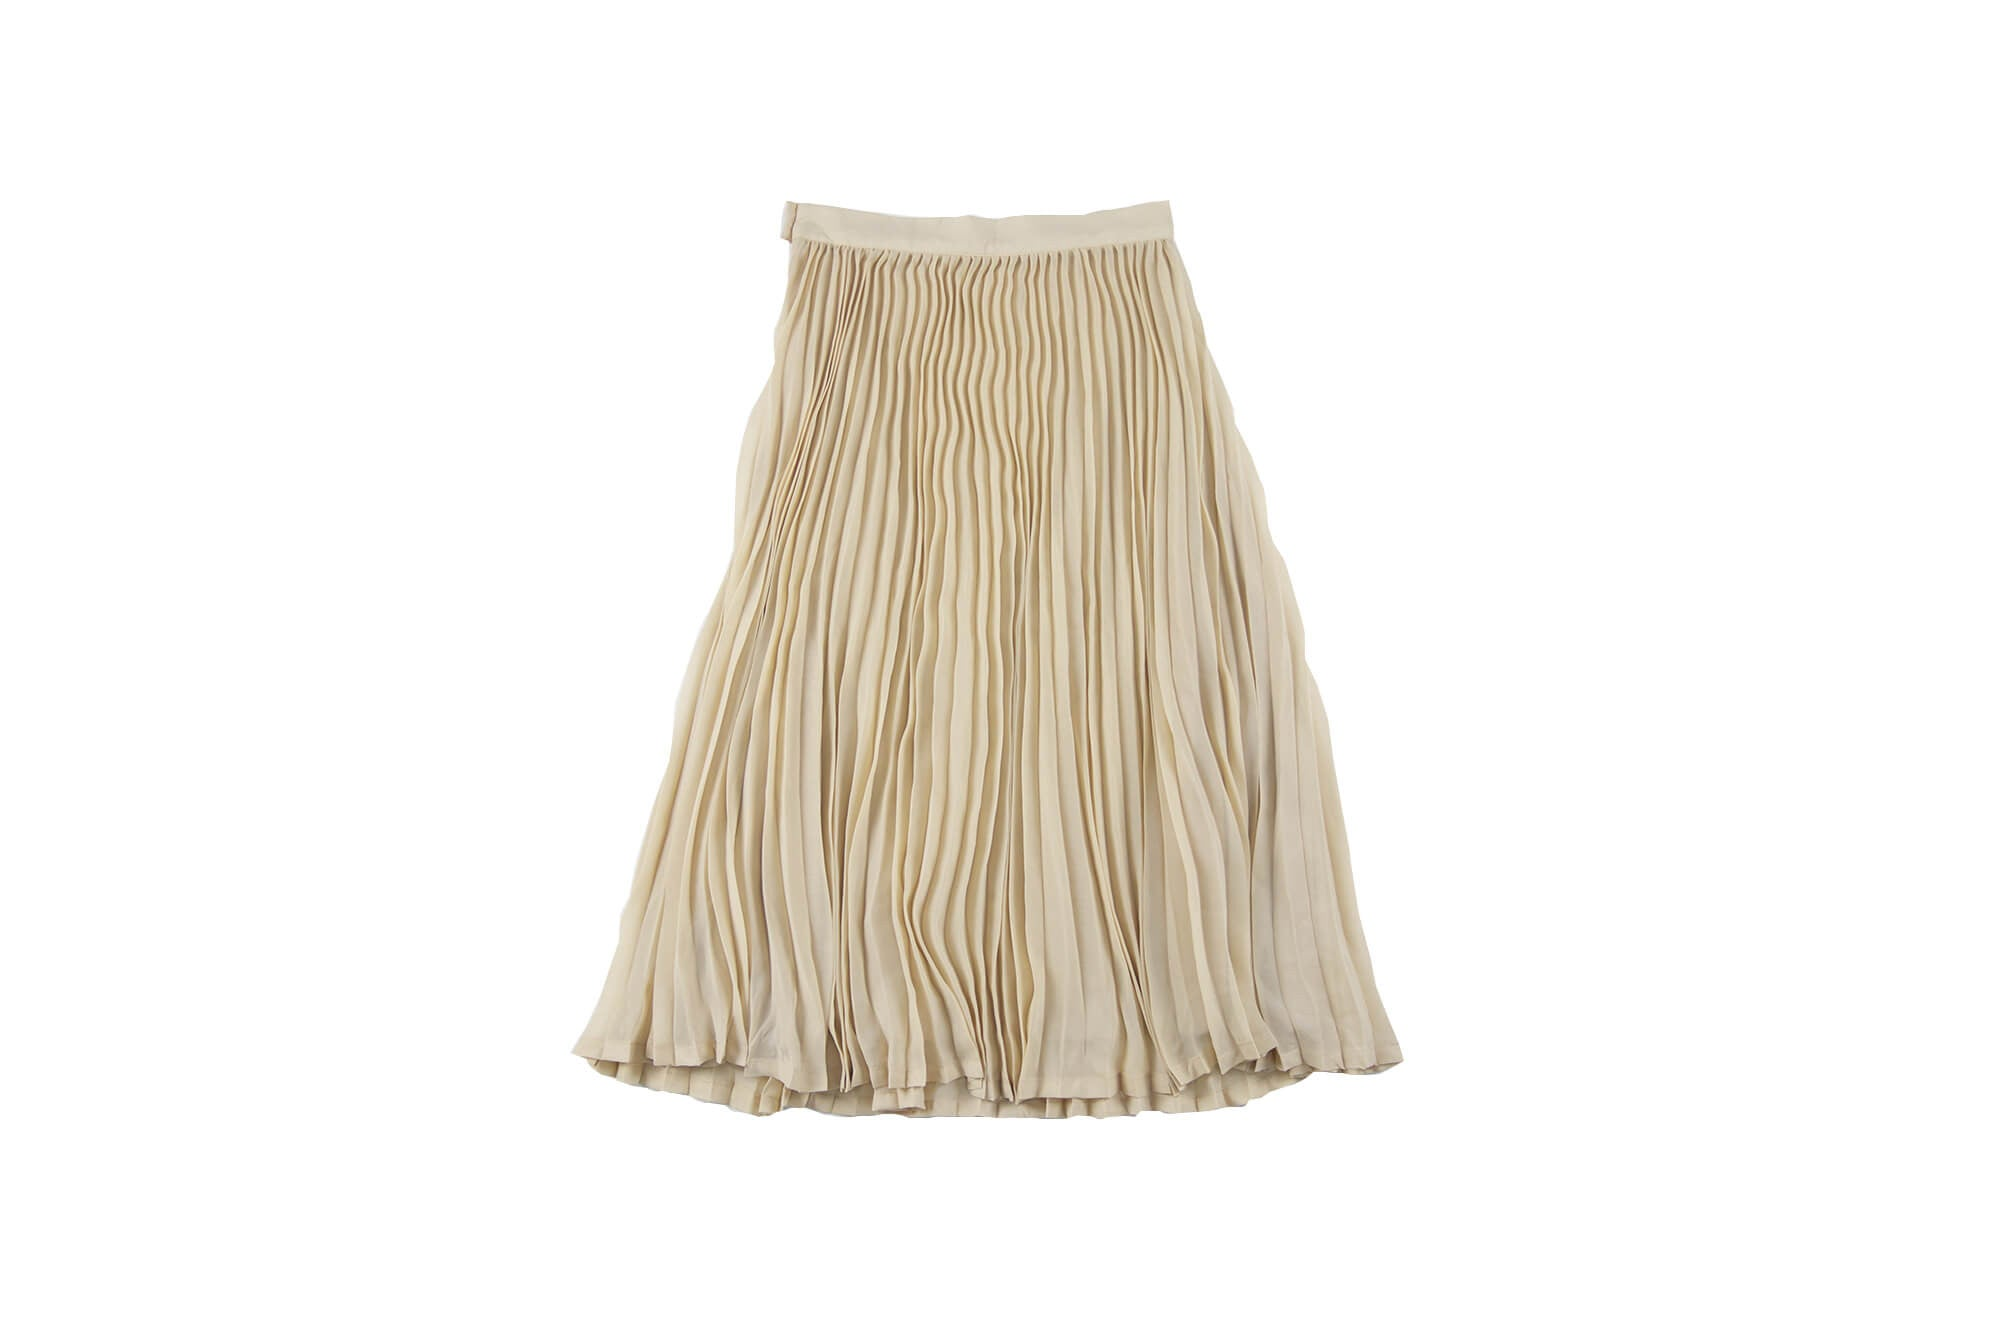 FEATHER DRUM - Ava Pleated Maxi Skirt / Nude